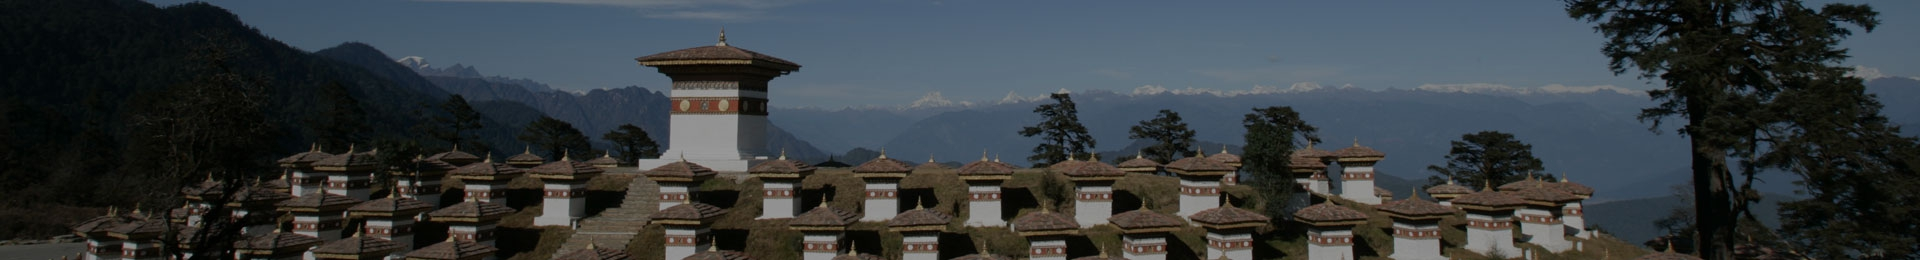 Important Places & Sights in Bhutan